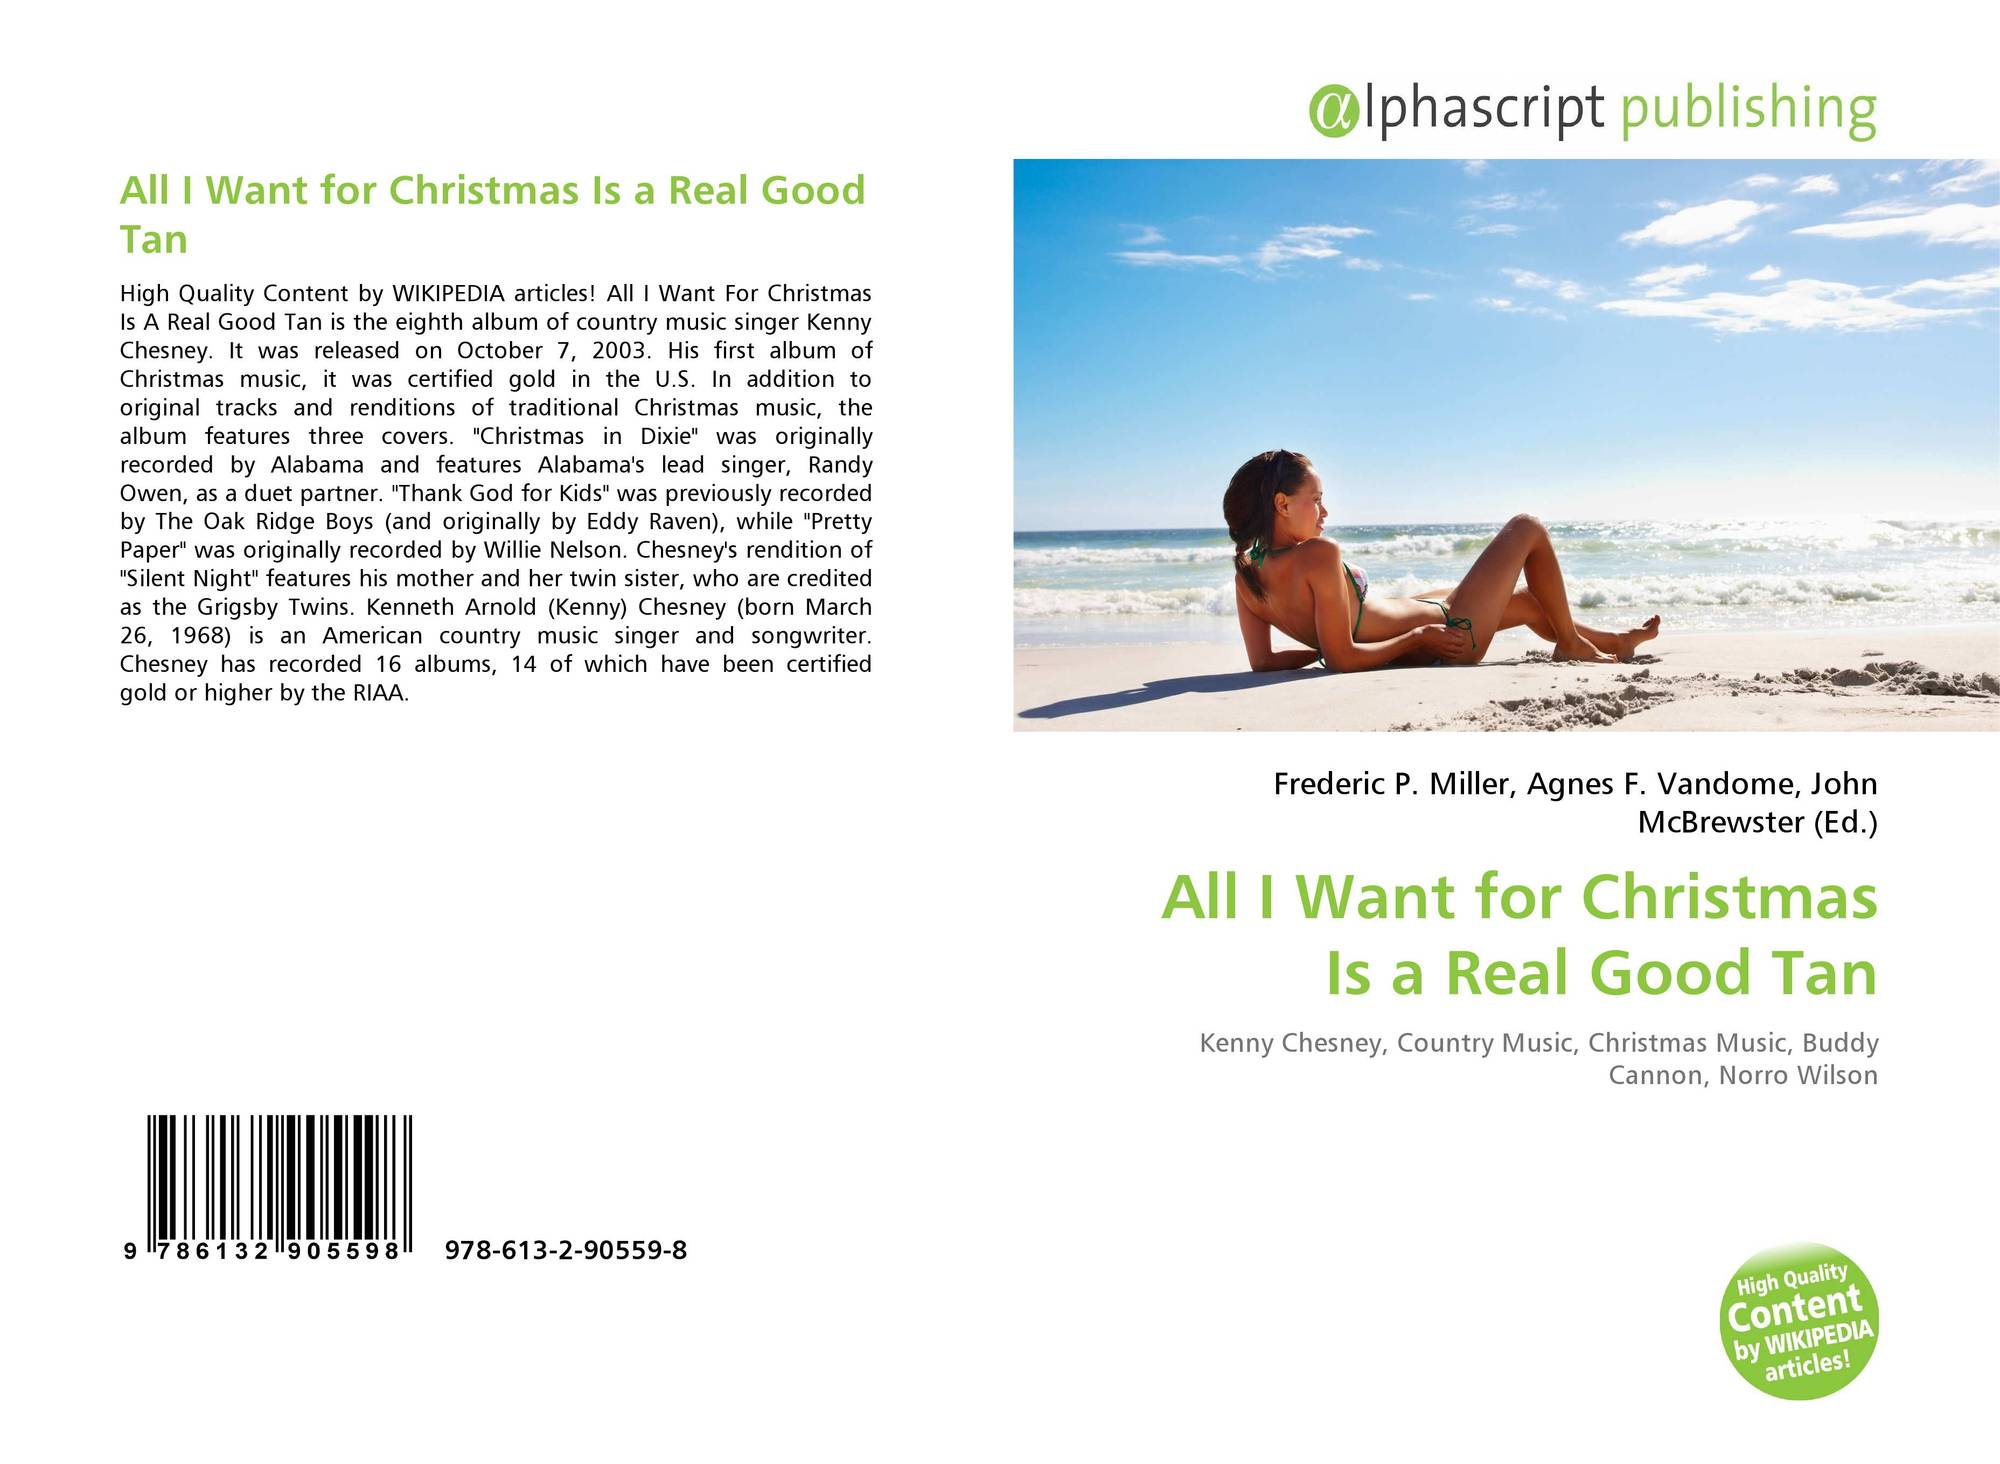 bookcover of all i want for christmas is a real good tan